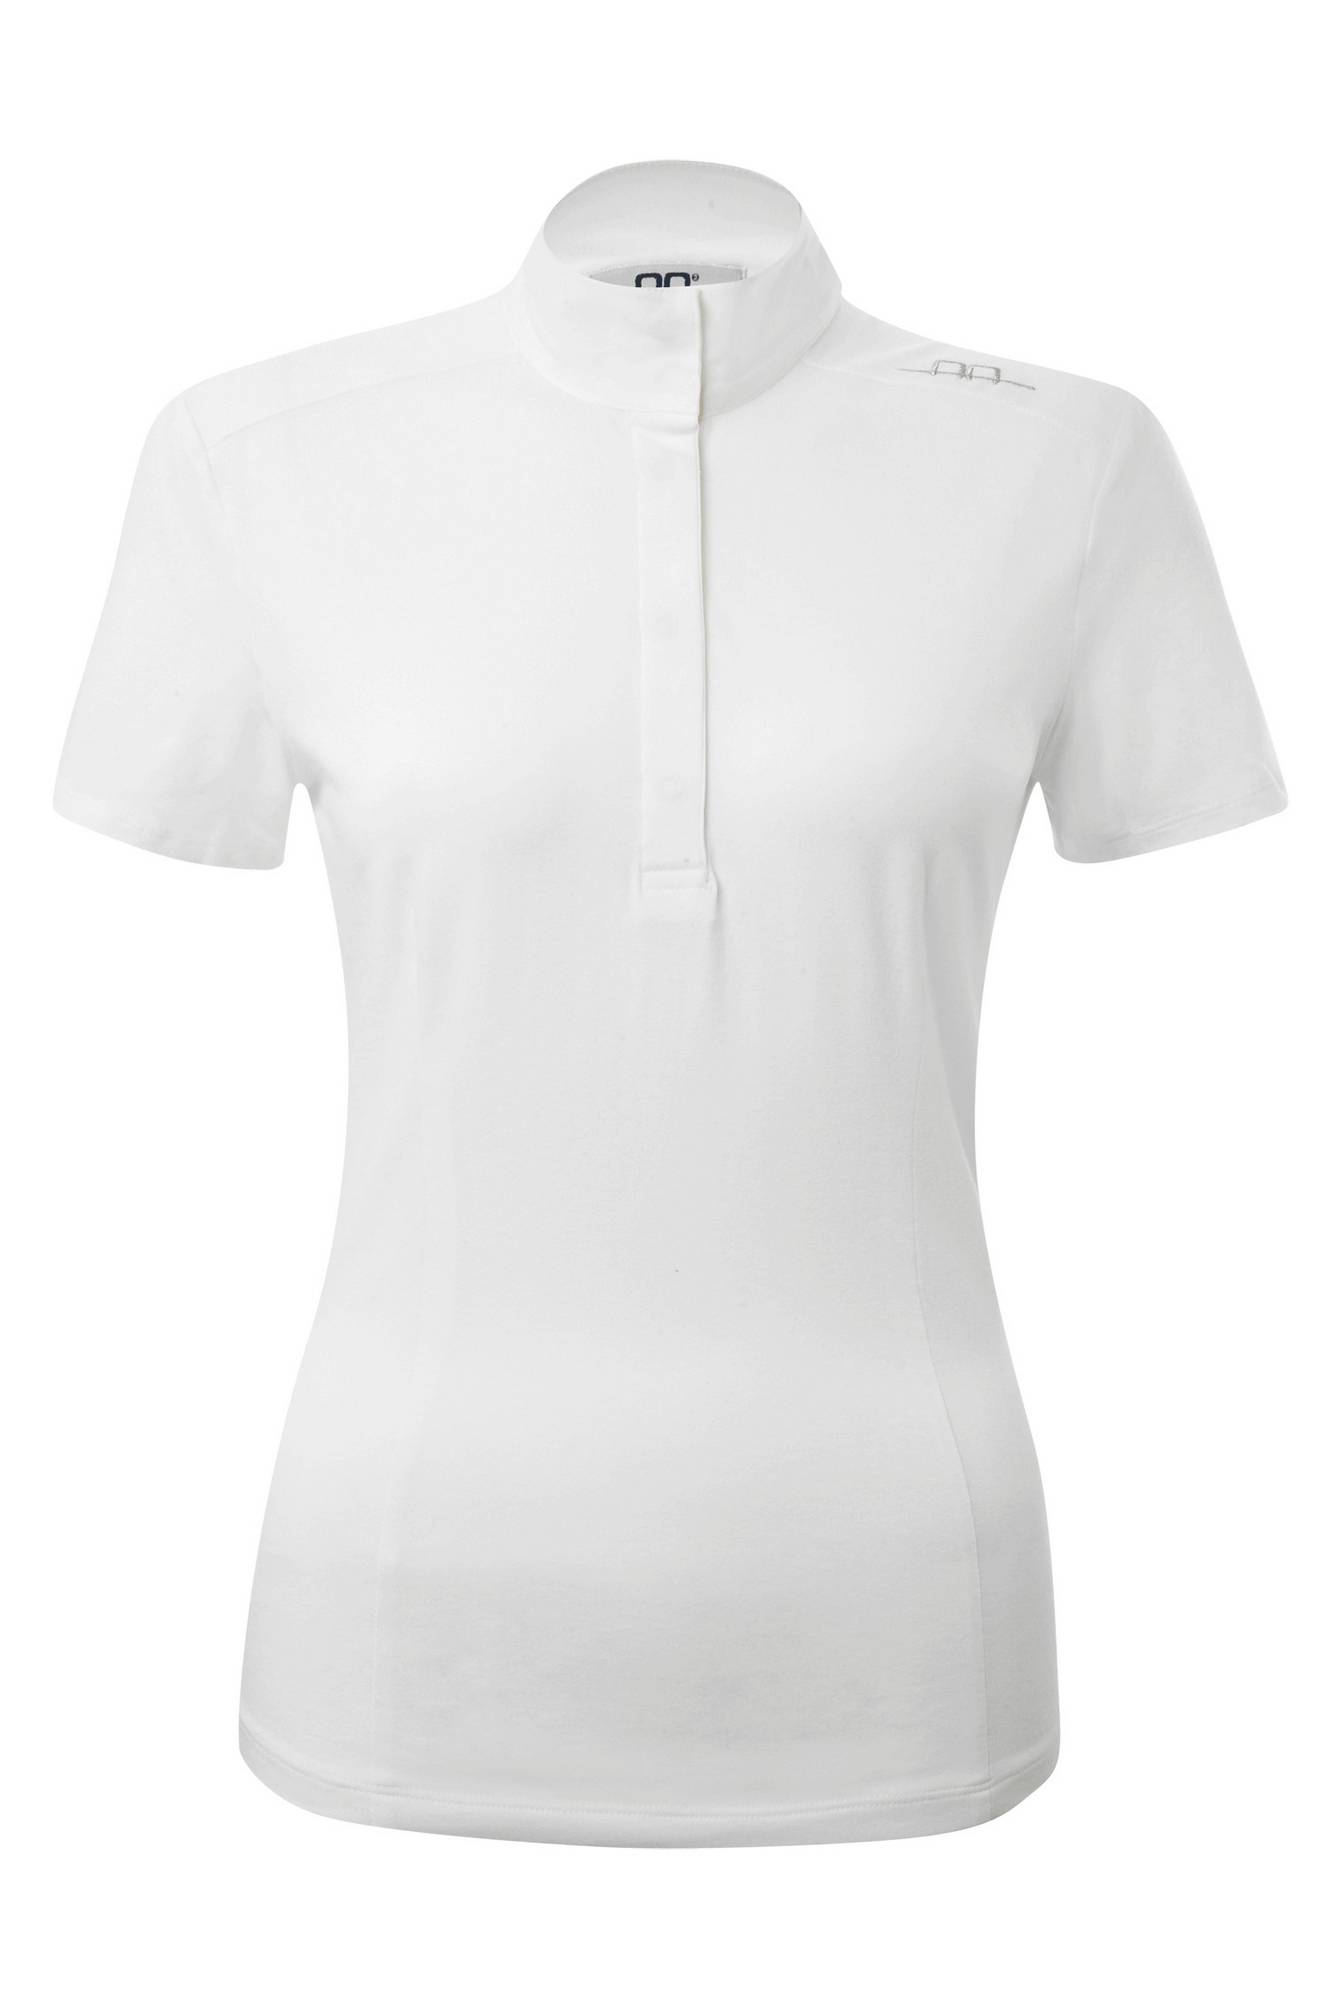 Alessandro Albanese E11 Ladies Polo Competition Top Short Sleeve